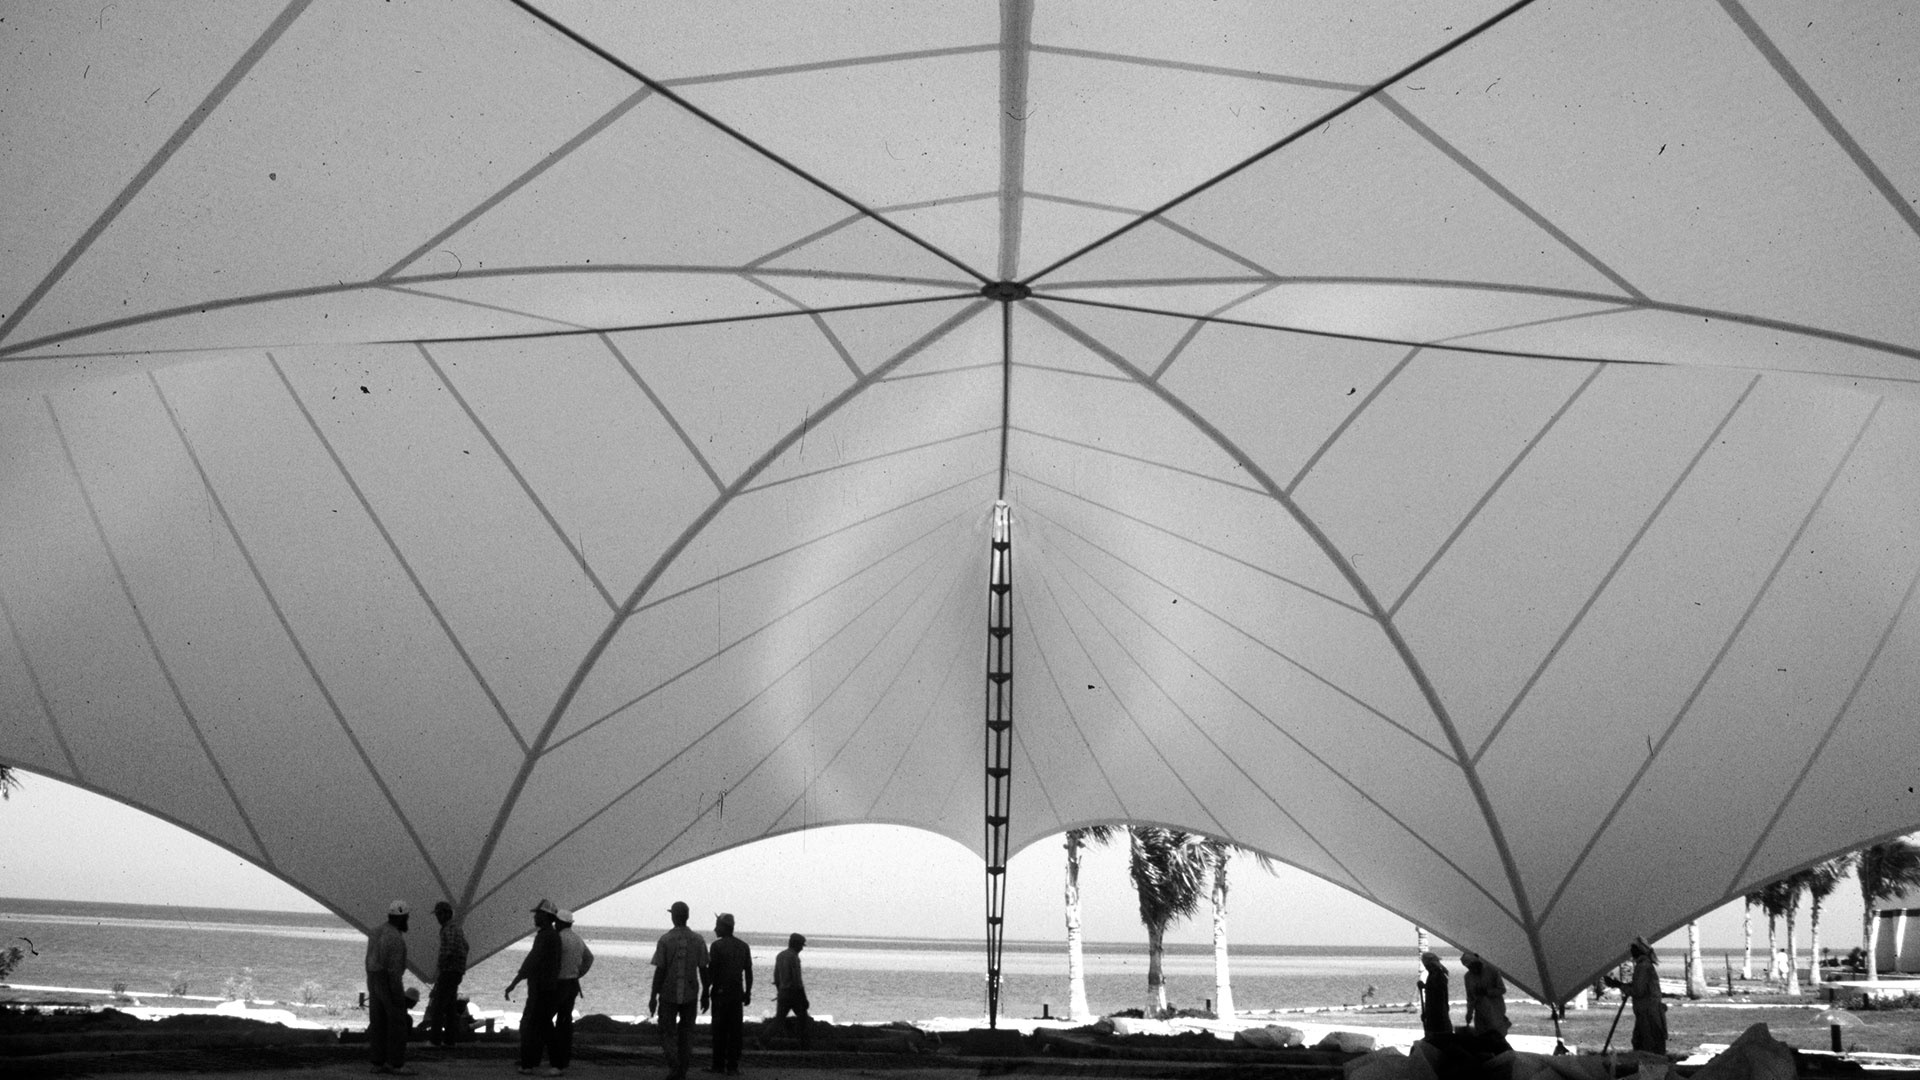 Tent architecture for the Thuwal Palace beach residence - In 1990, SL Rasch designed and implemented the lightweight architecture for the beach residence in Thuwal, Saudi Arabia. The pure forms and balanced blend of lightness and elegance give the tents a sculptural quality. By opening up a view of the surrounding gardens and the sea, the wavelike openings of the convention tent make the outdoor space part of the interior experience.